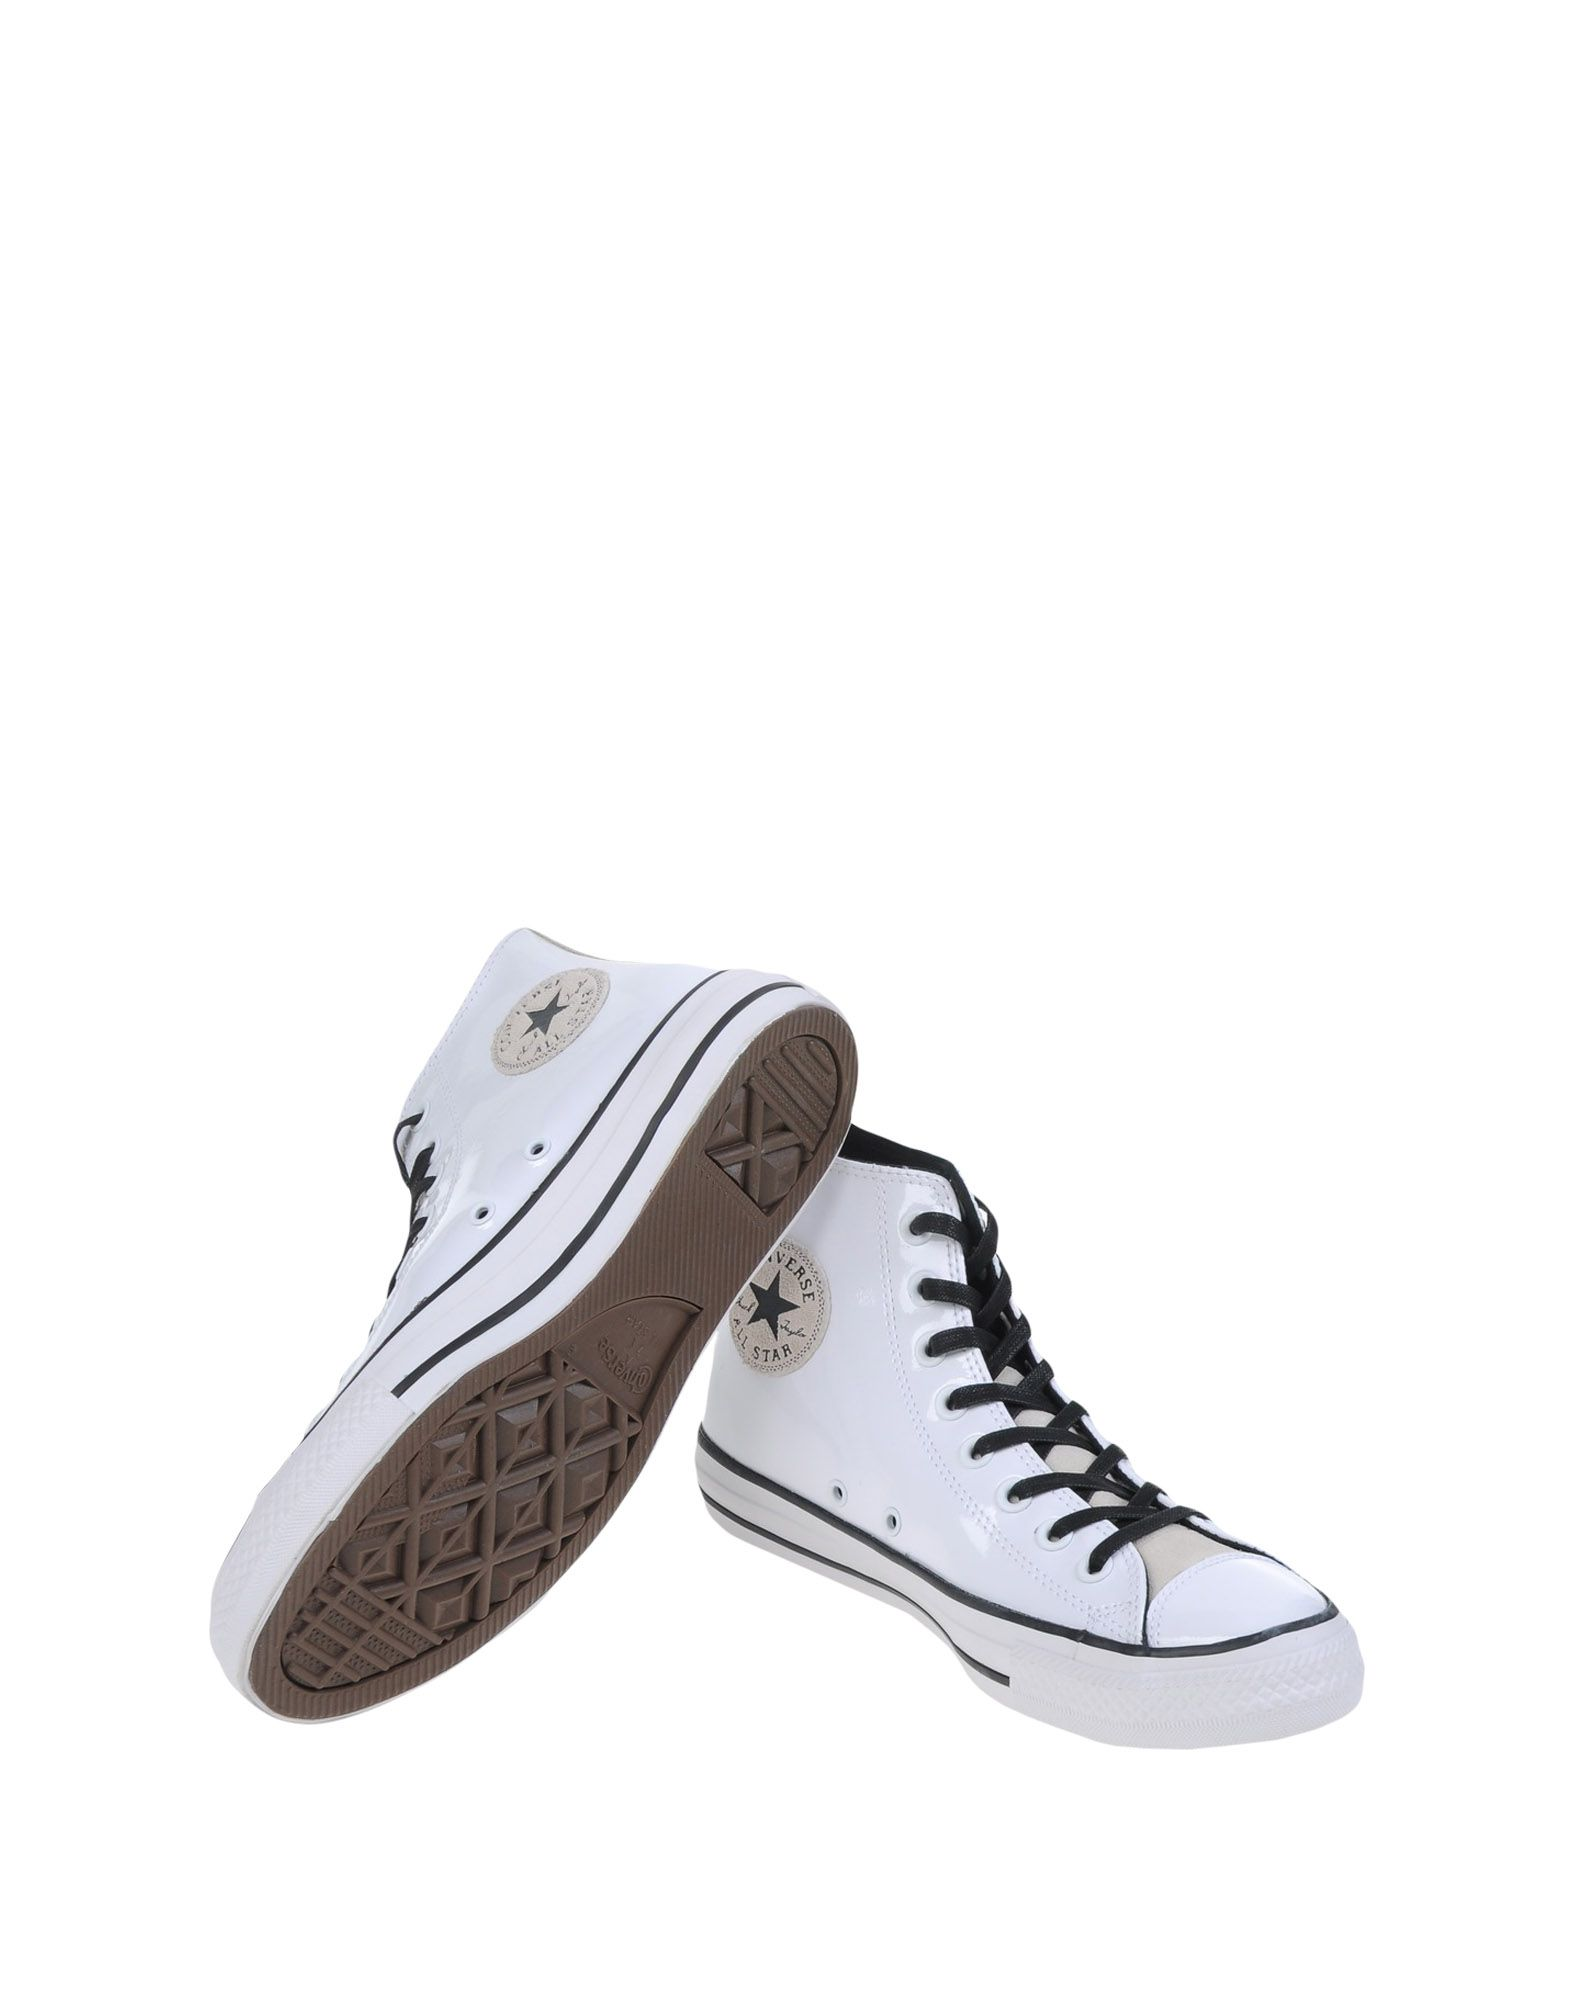 Sneakers Converse All Star All Star Hi Patent/Suede - Femme - Sneakers Converse All Star sur